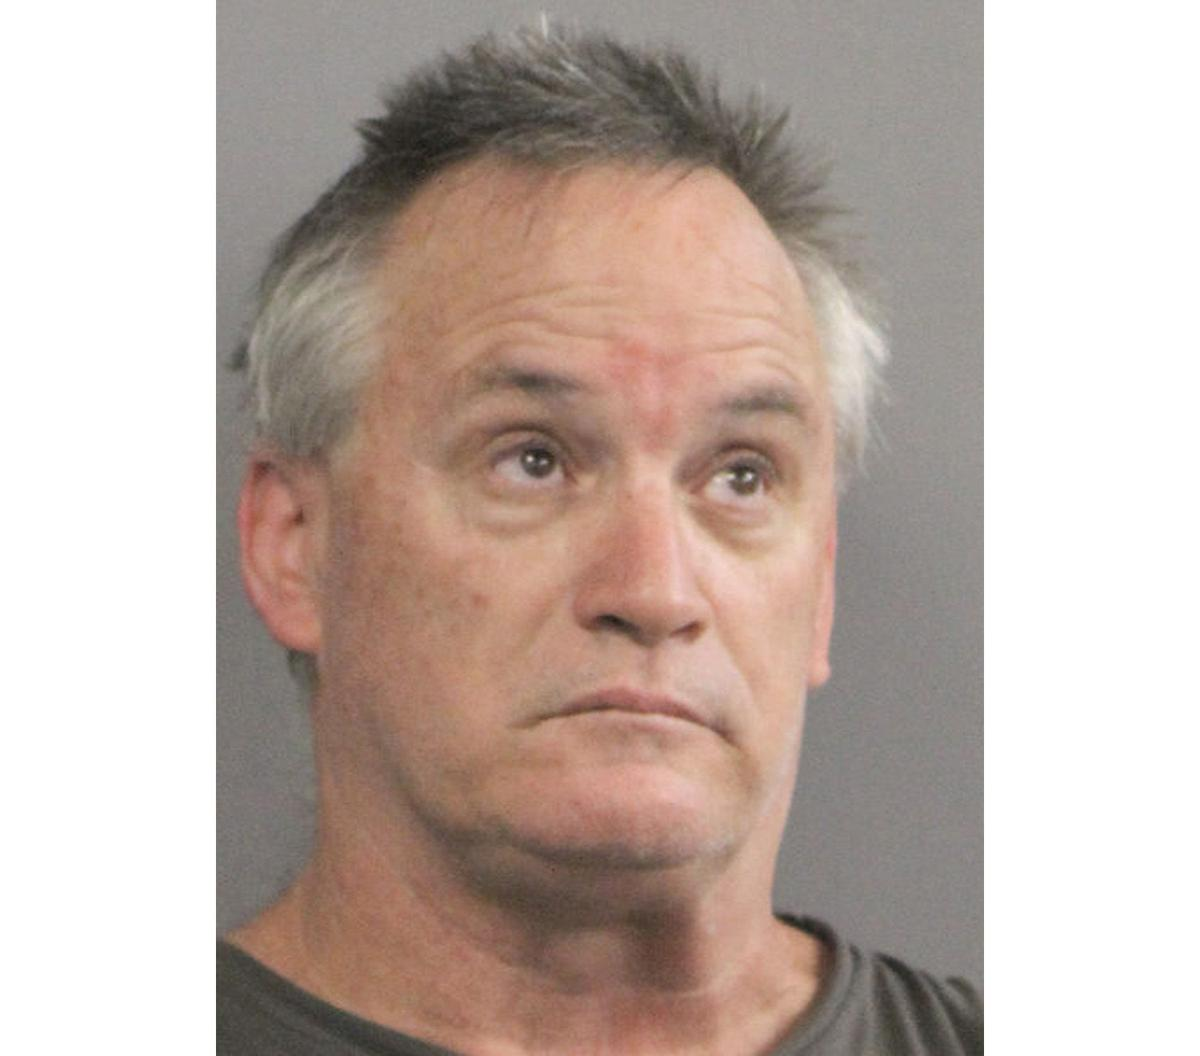 Man booked with video voyeurism at St. Catherine of Siena fair: JPSO